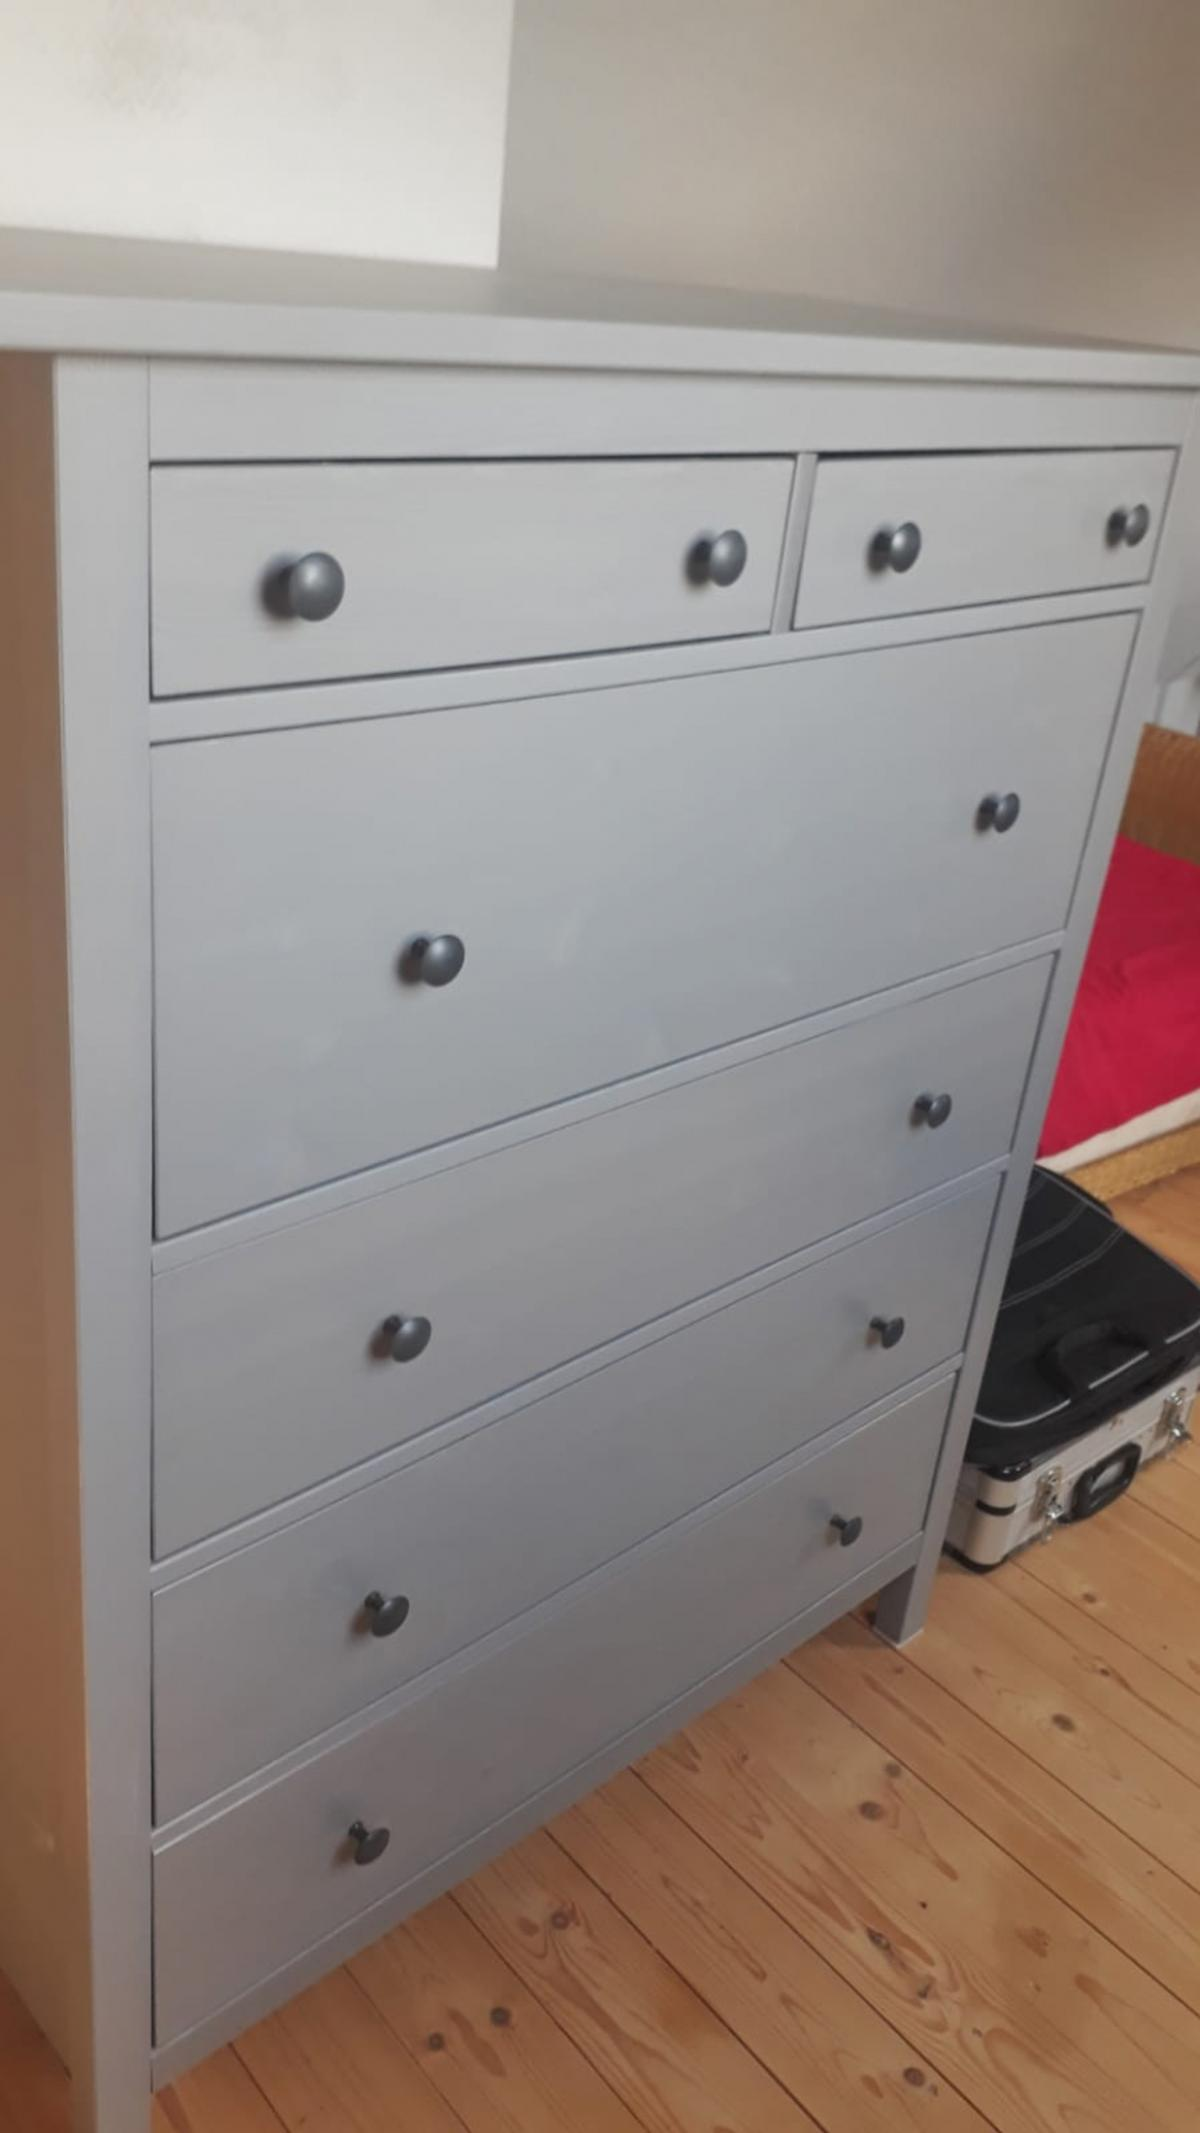 Ikea Schrank In 17166 Grambzow For 100 00 For Sale Shpock